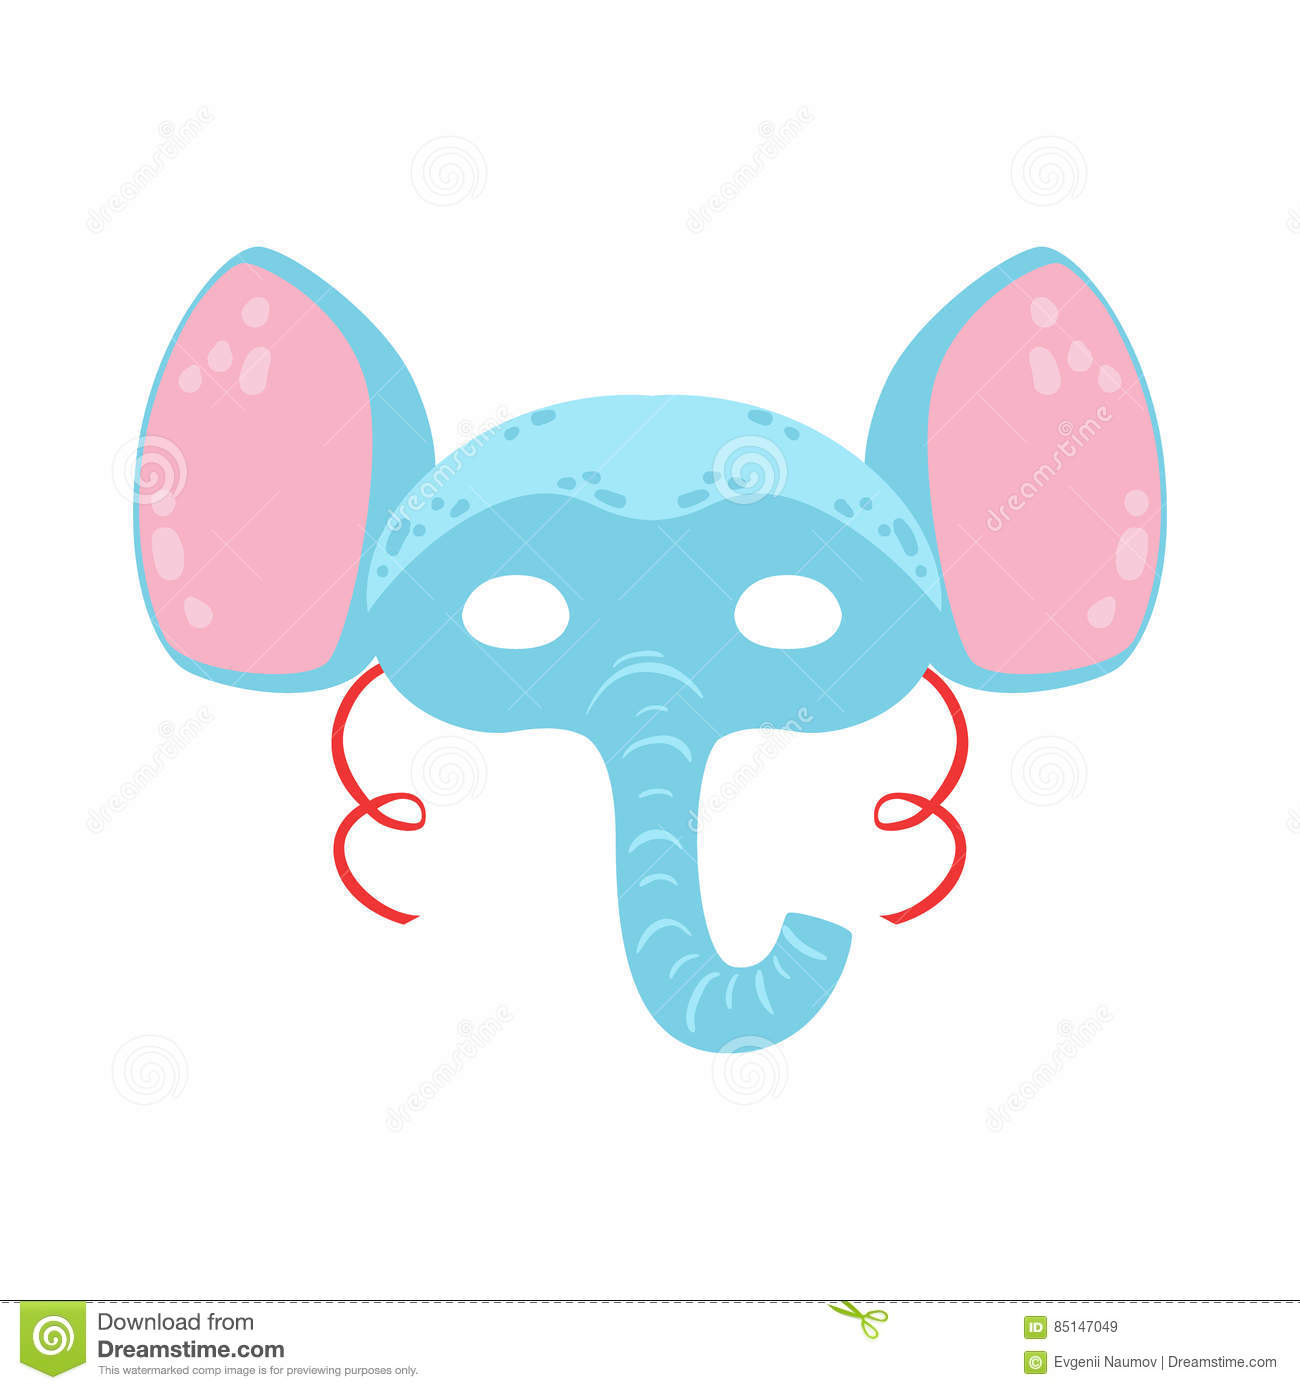 Elephant Animal Head Mask, Kids Carnival Disguise Costume Element